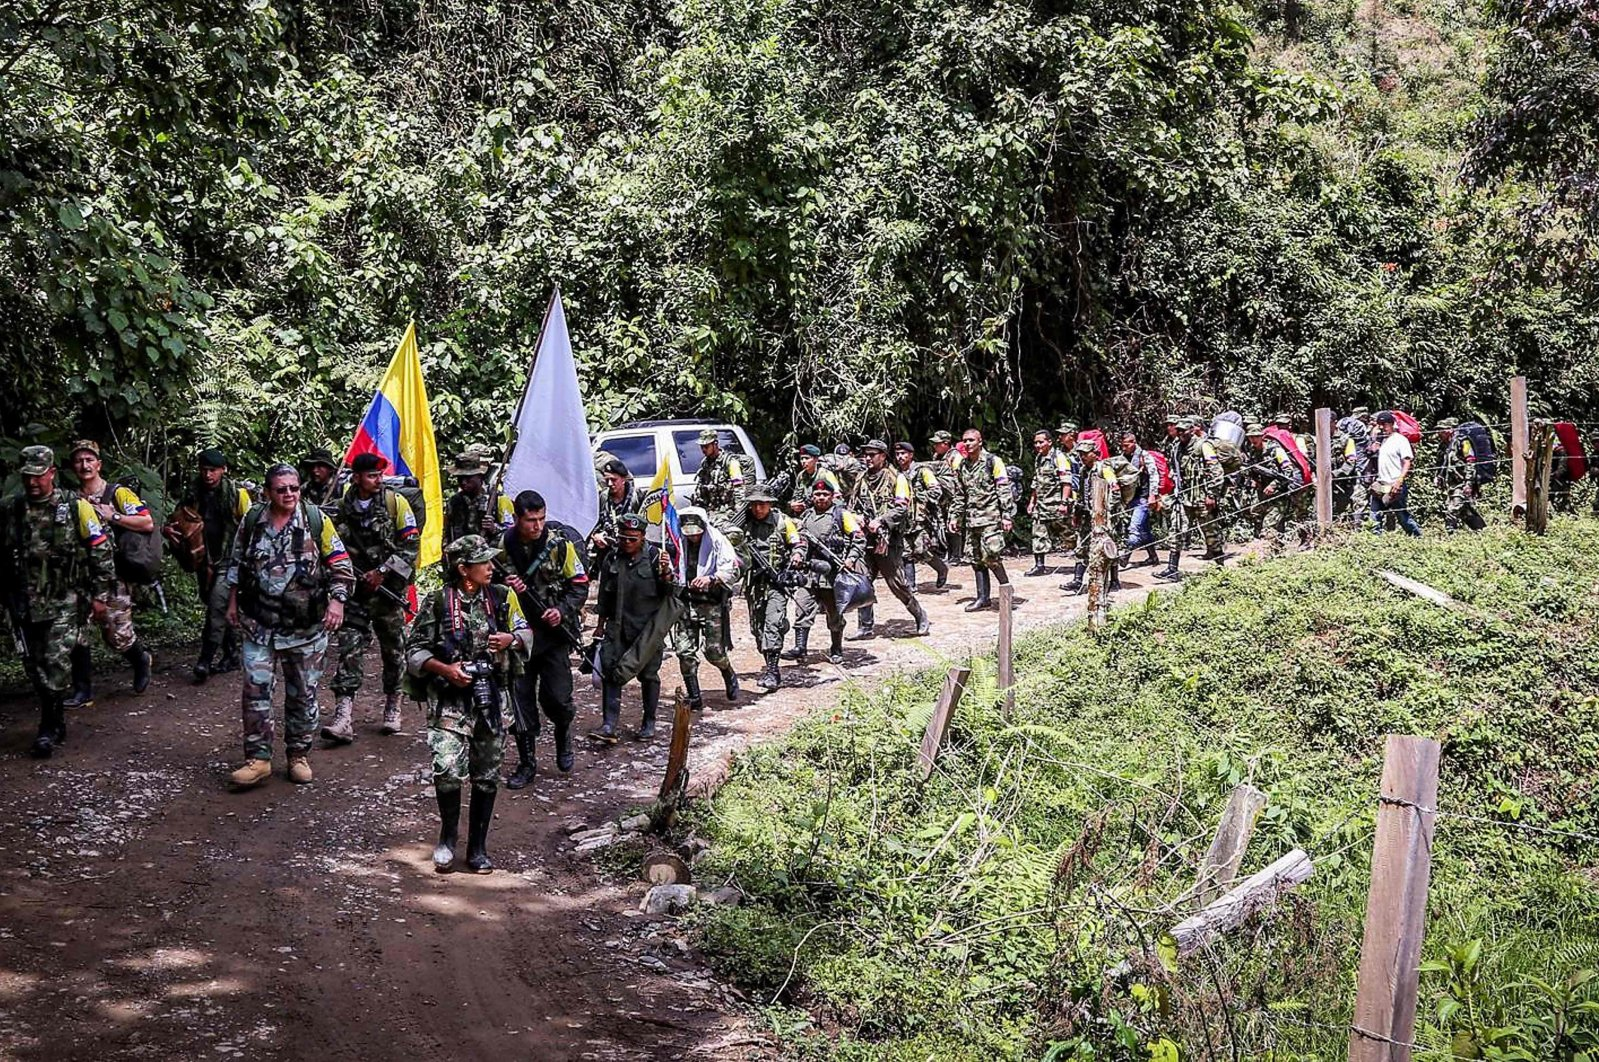 Handout picture released by the Revolutionary Armed Forces of Colombia (FARC) showing Commander Pablo Catatumbo leading rebels arriving to hand in their weapons in Buenos Aires, Cauca Department, Colombia on Jan. 1, 2017. (FARC Photo via AFP)